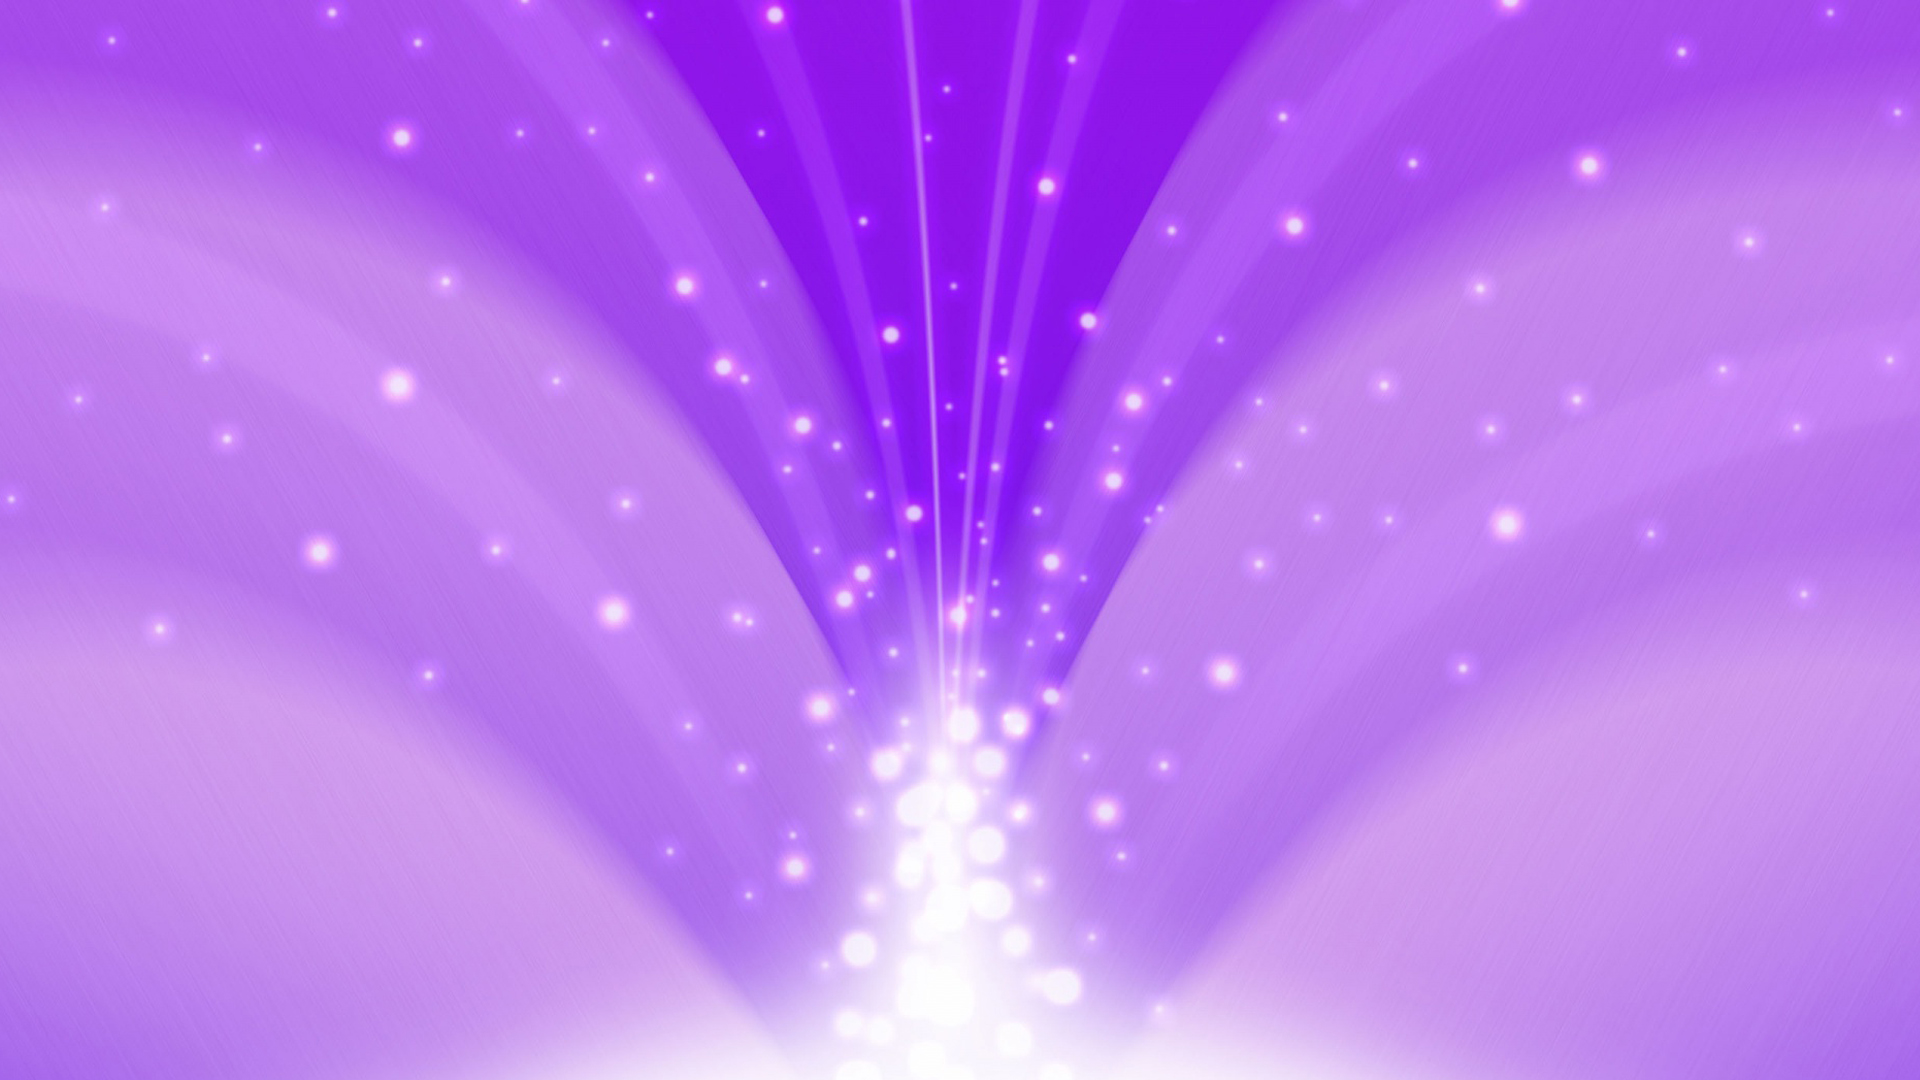 Simple Light Purple Wallpaper